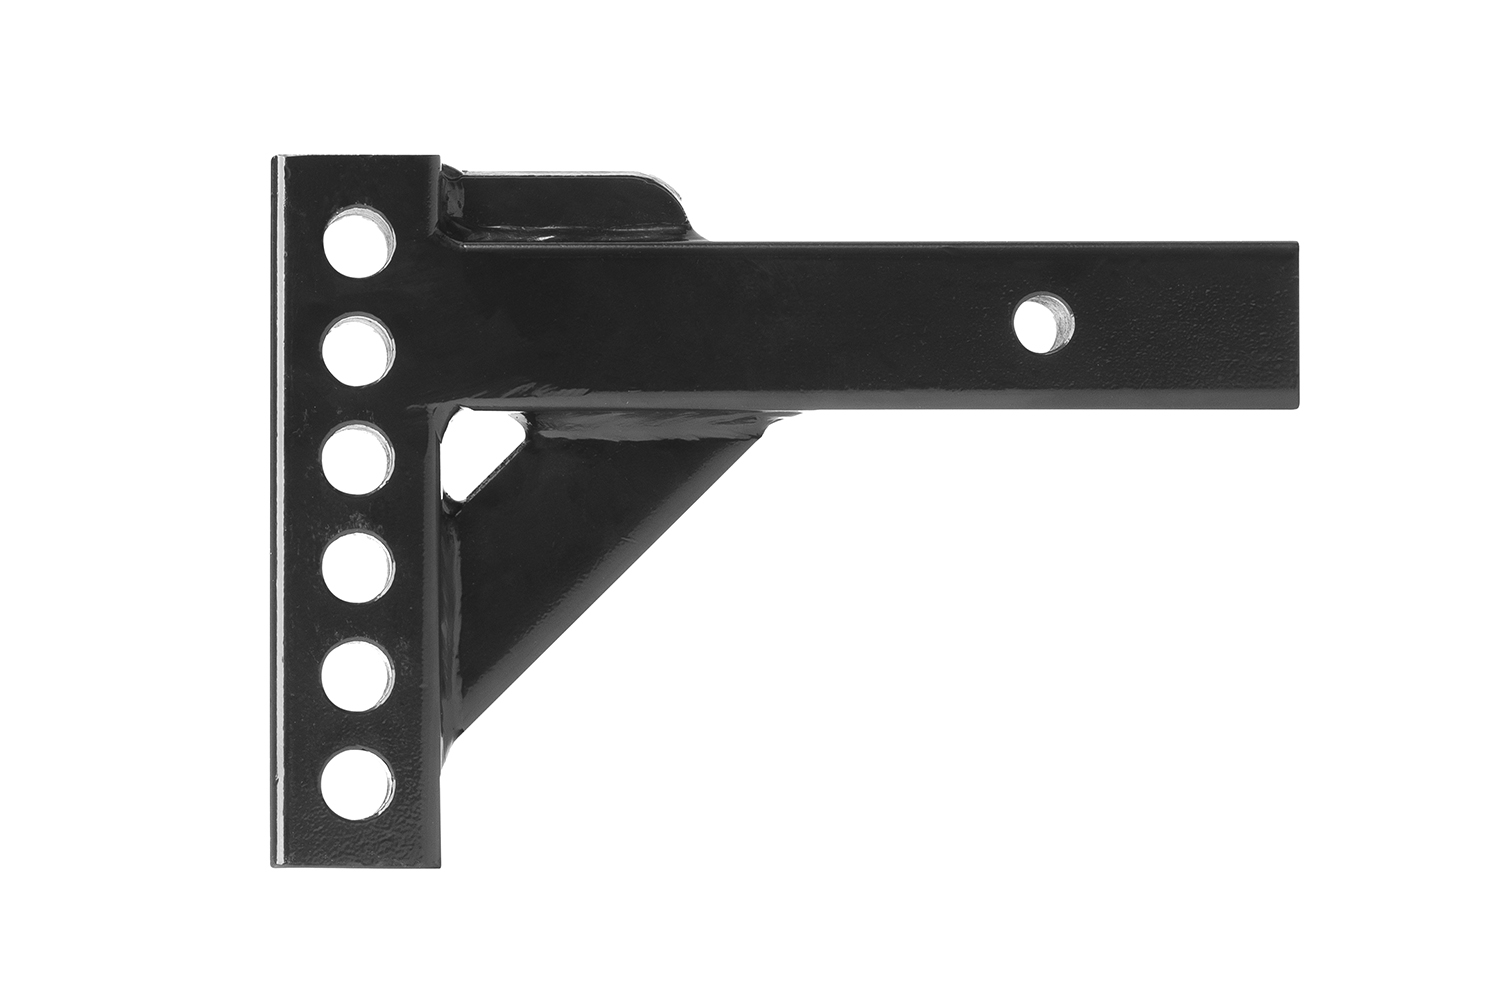 92-02-4100 Fastway Trailer Products Weight Distribution Hitch Shank